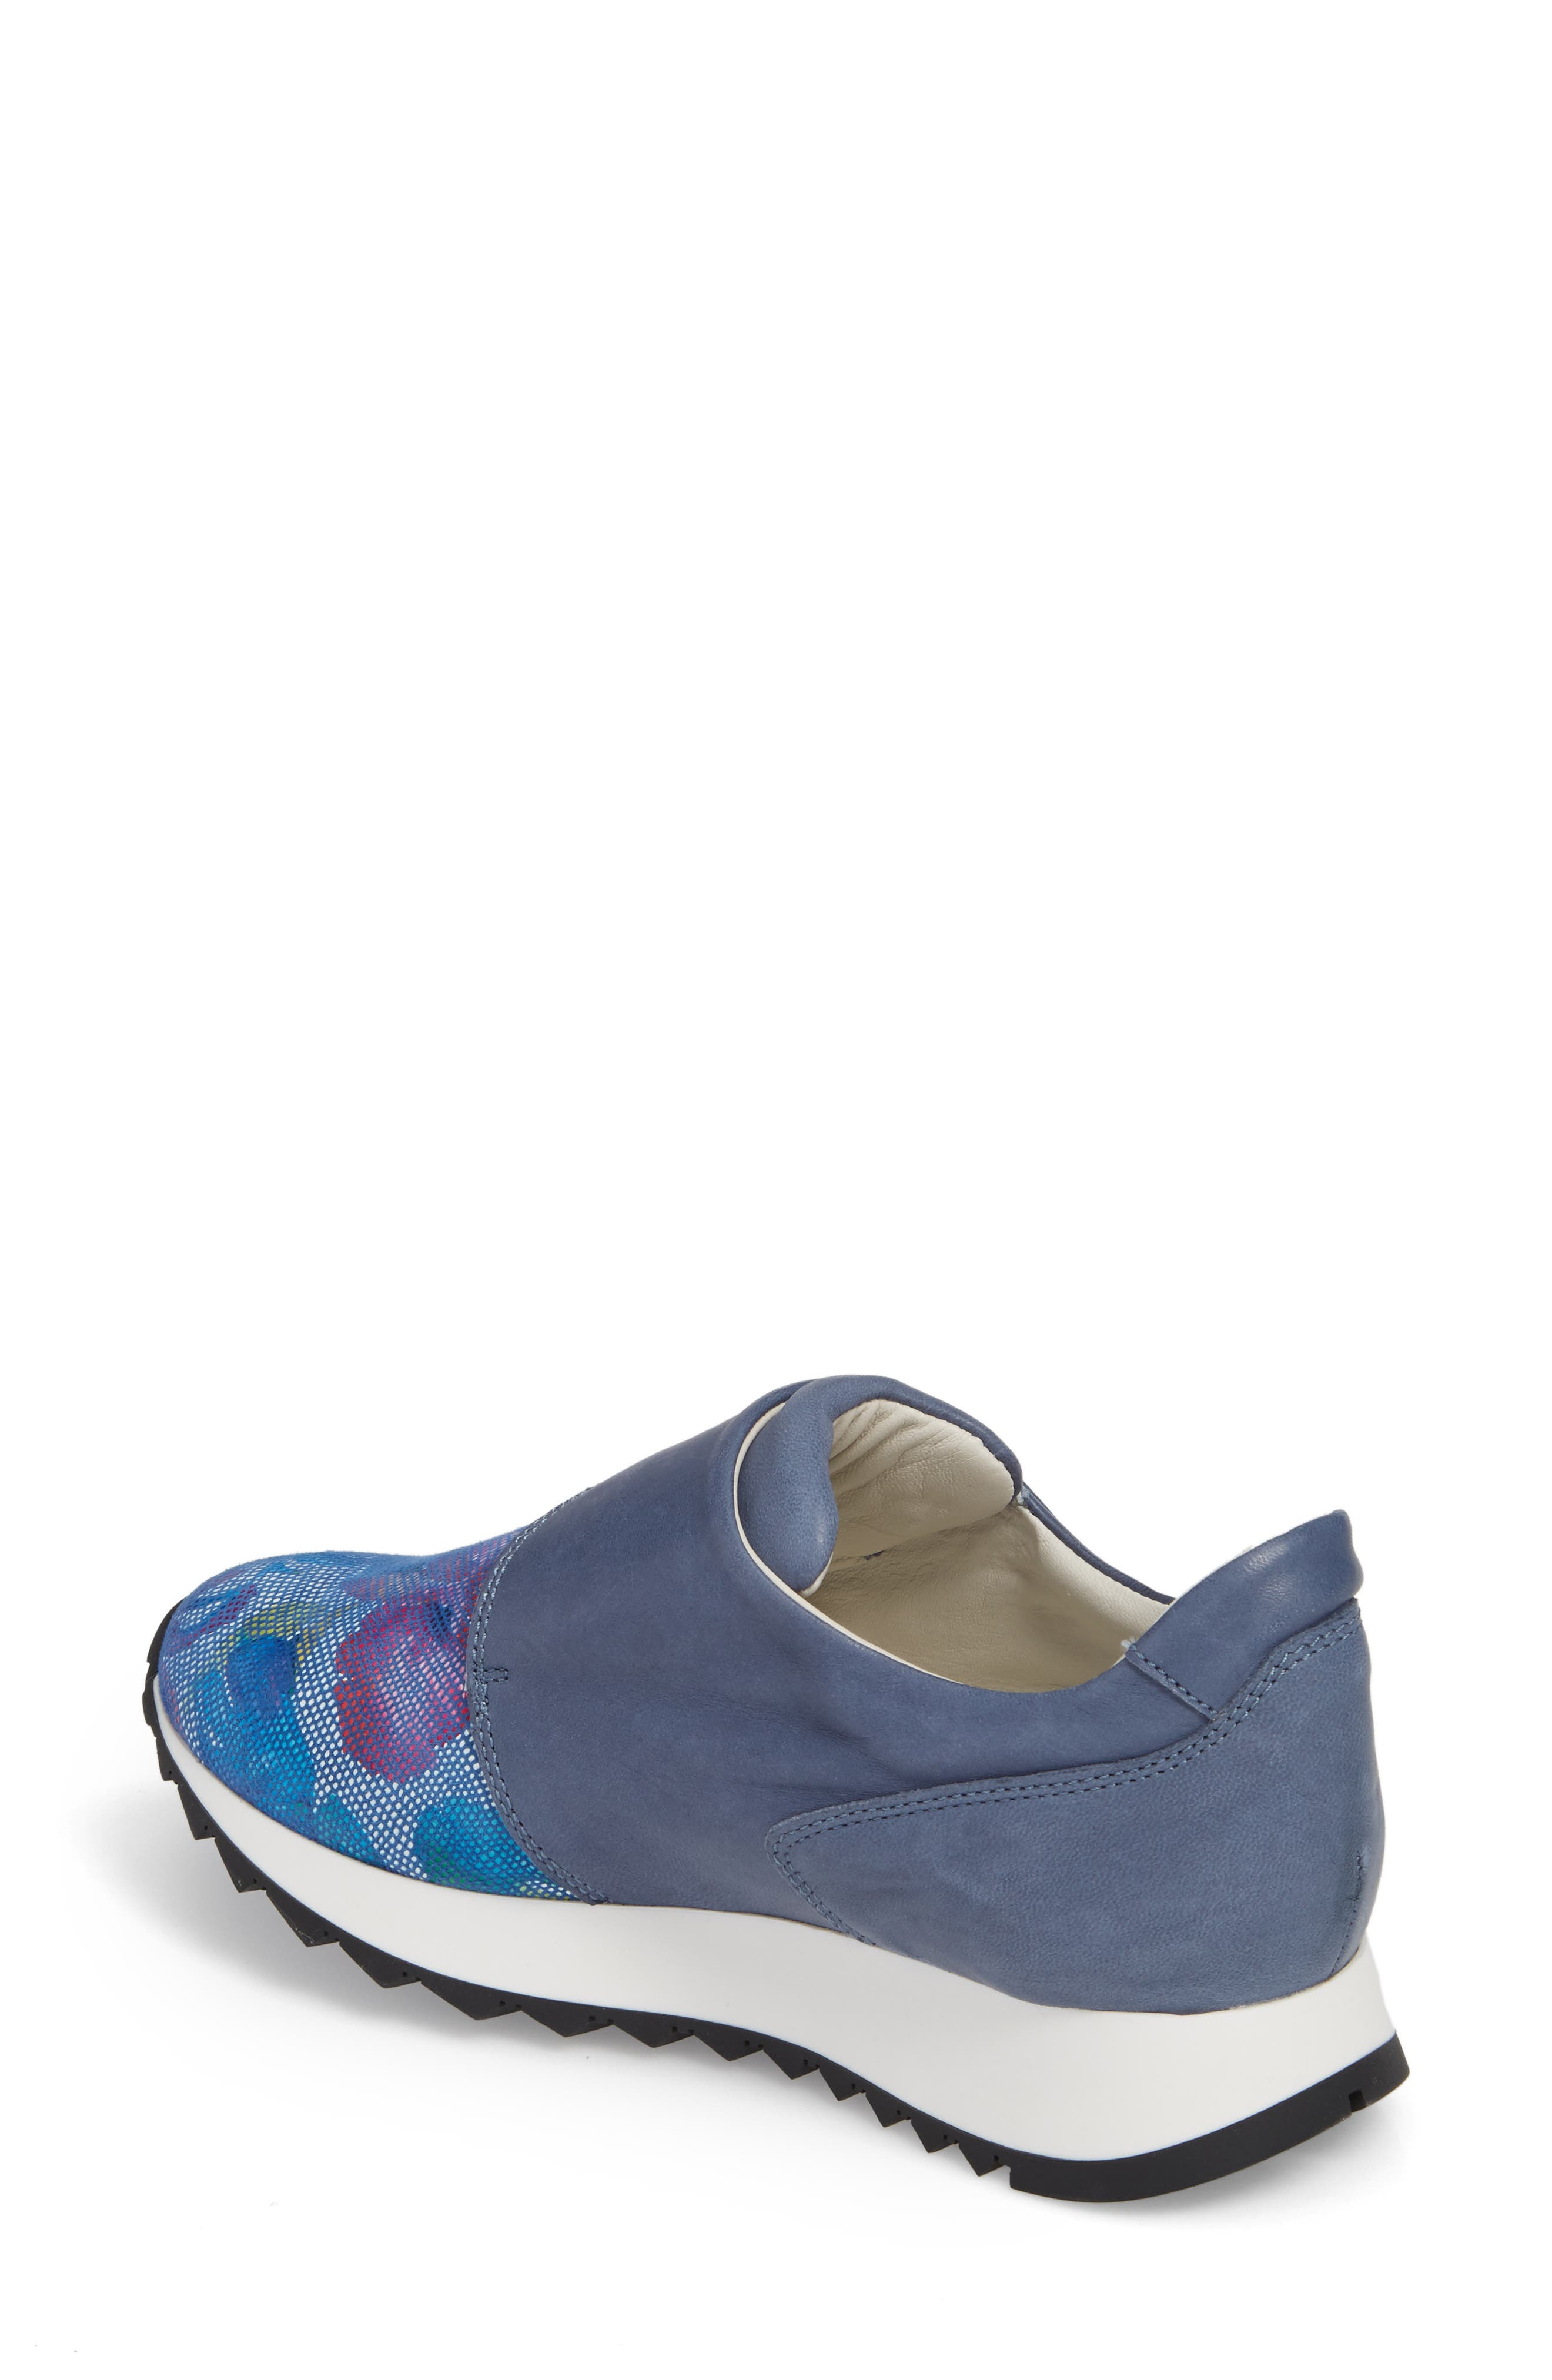 Danza Wedge Sneaker,                             Alternate thumbnail 2, color,                             Royal Leather